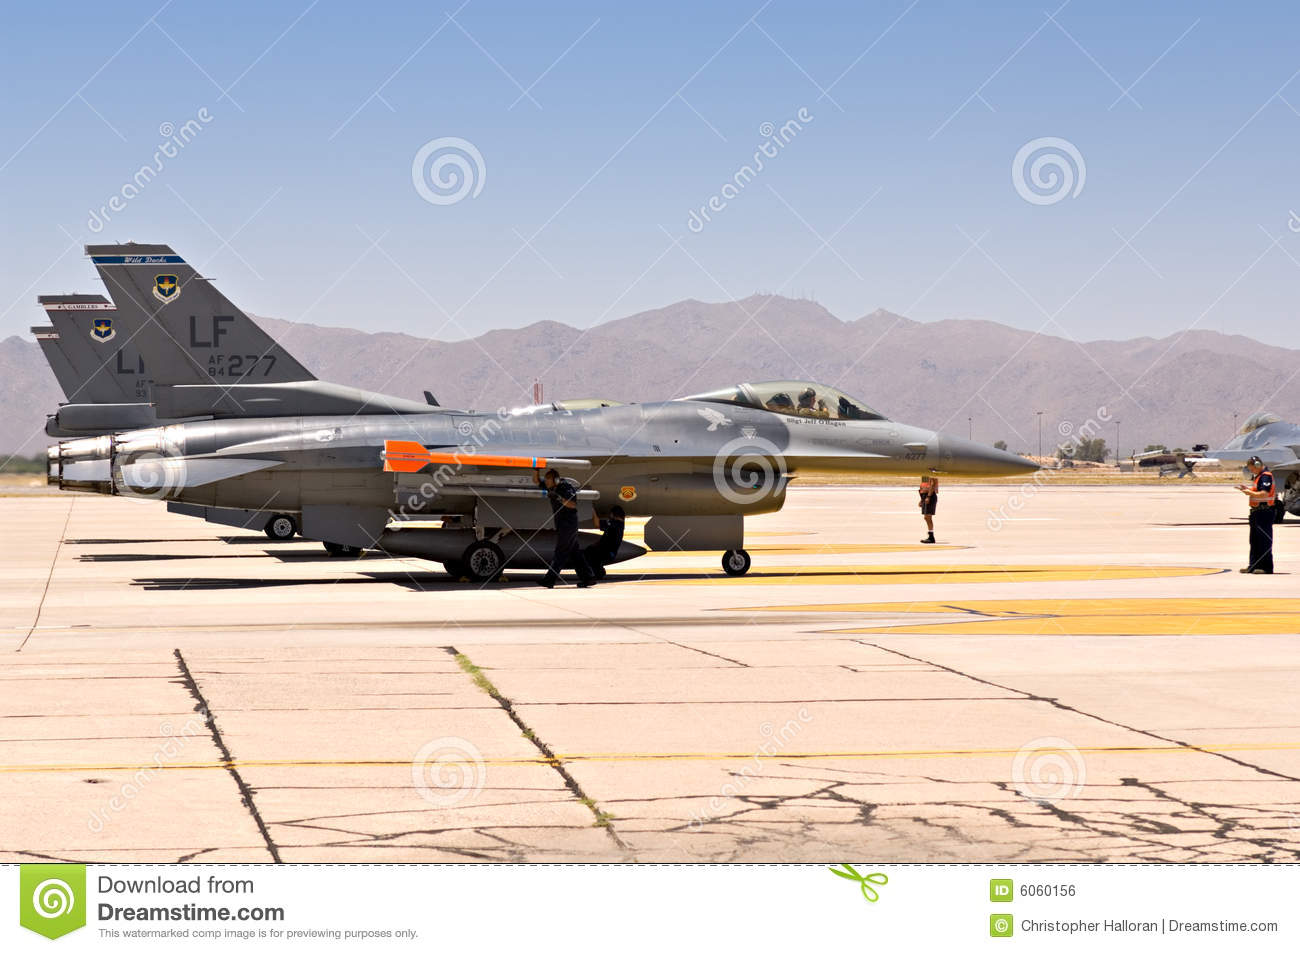 F-16 Falcon fighter jets